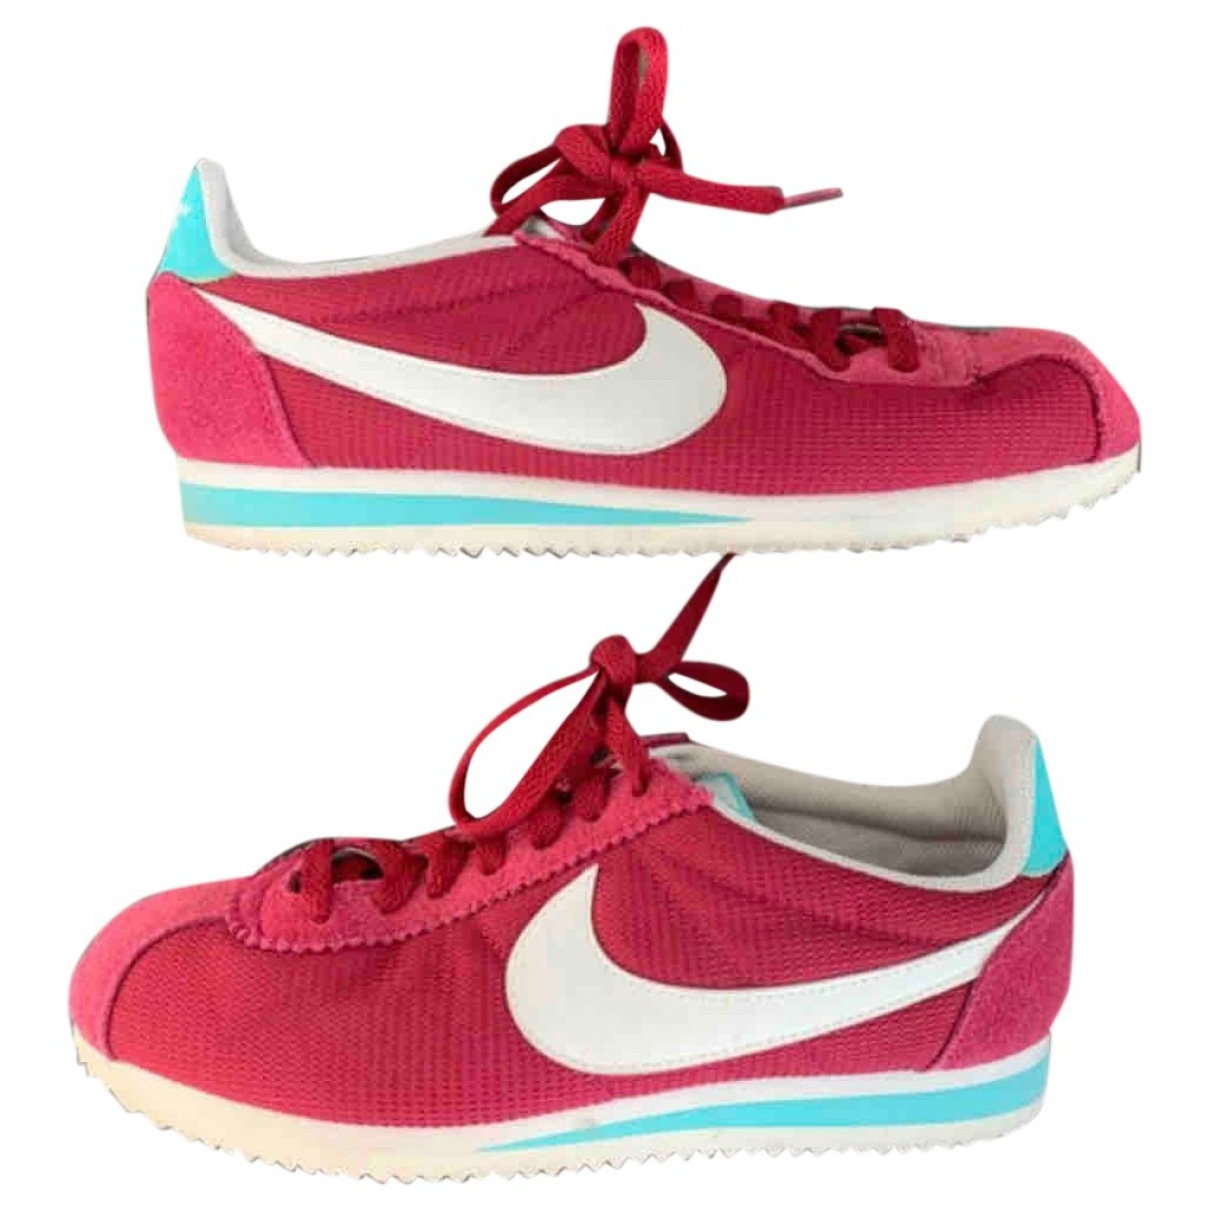 Nike Cortez Red Suede Trainers for Women 40 EU